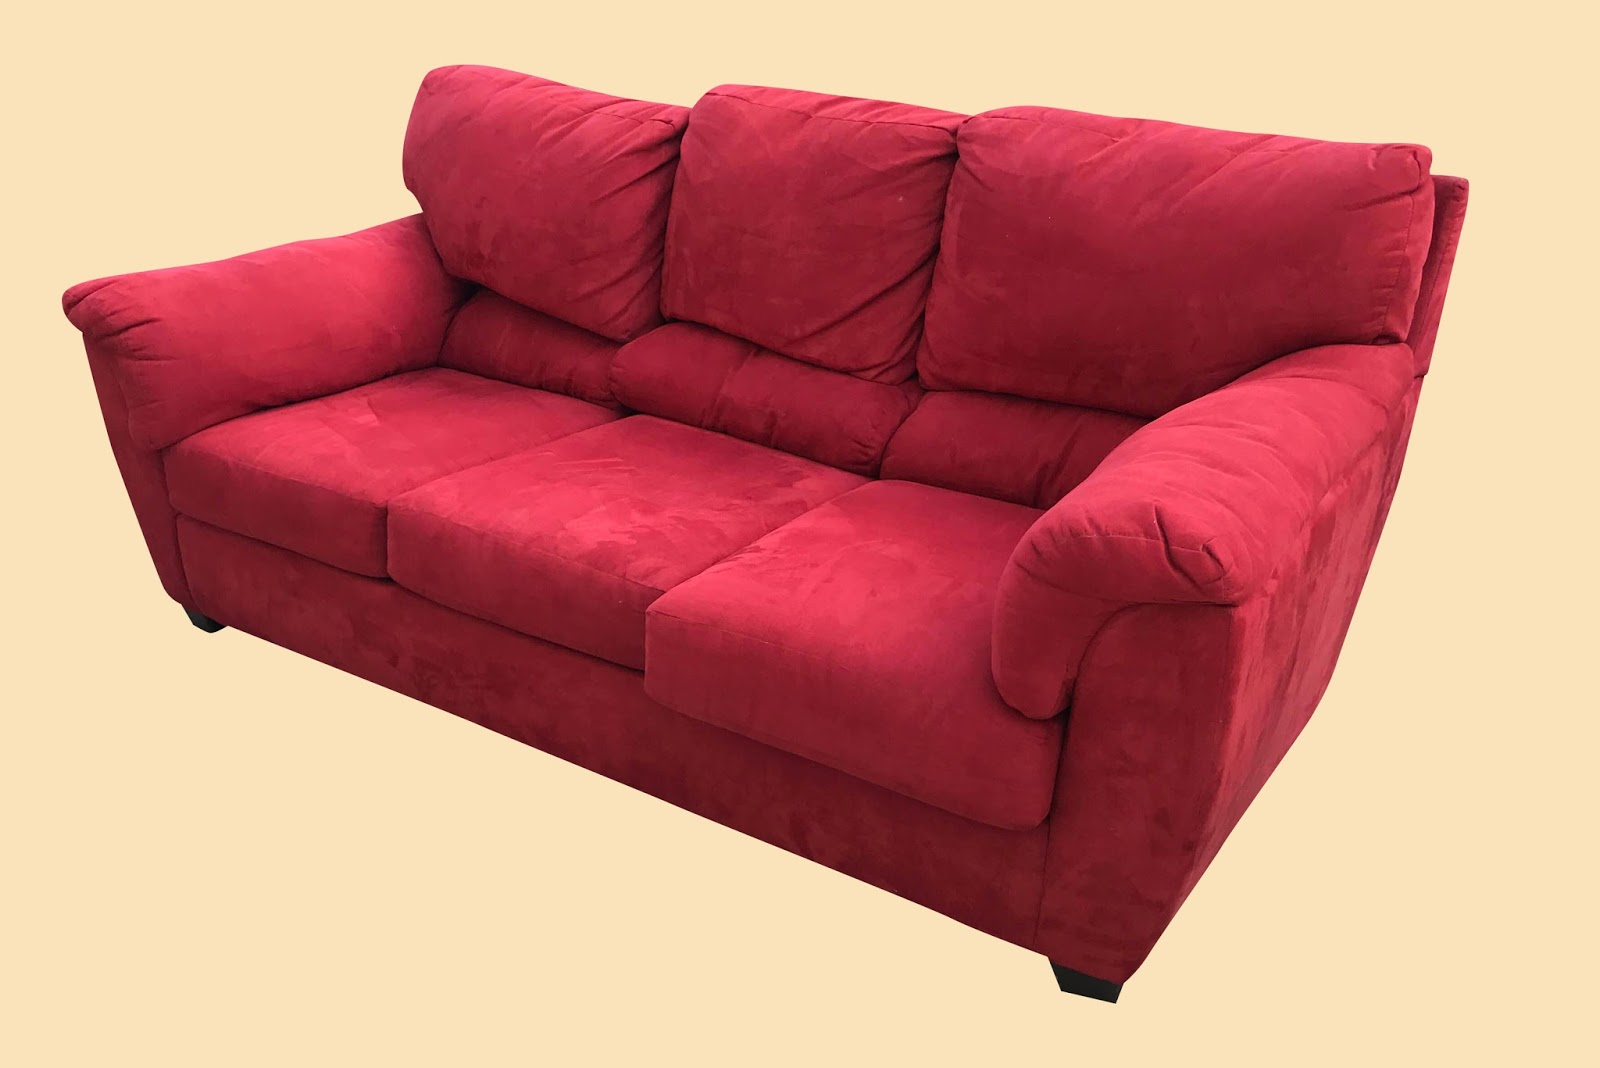 red microfiber reclining sofa modern sofas for offices uhuru furniture and collectibles 225